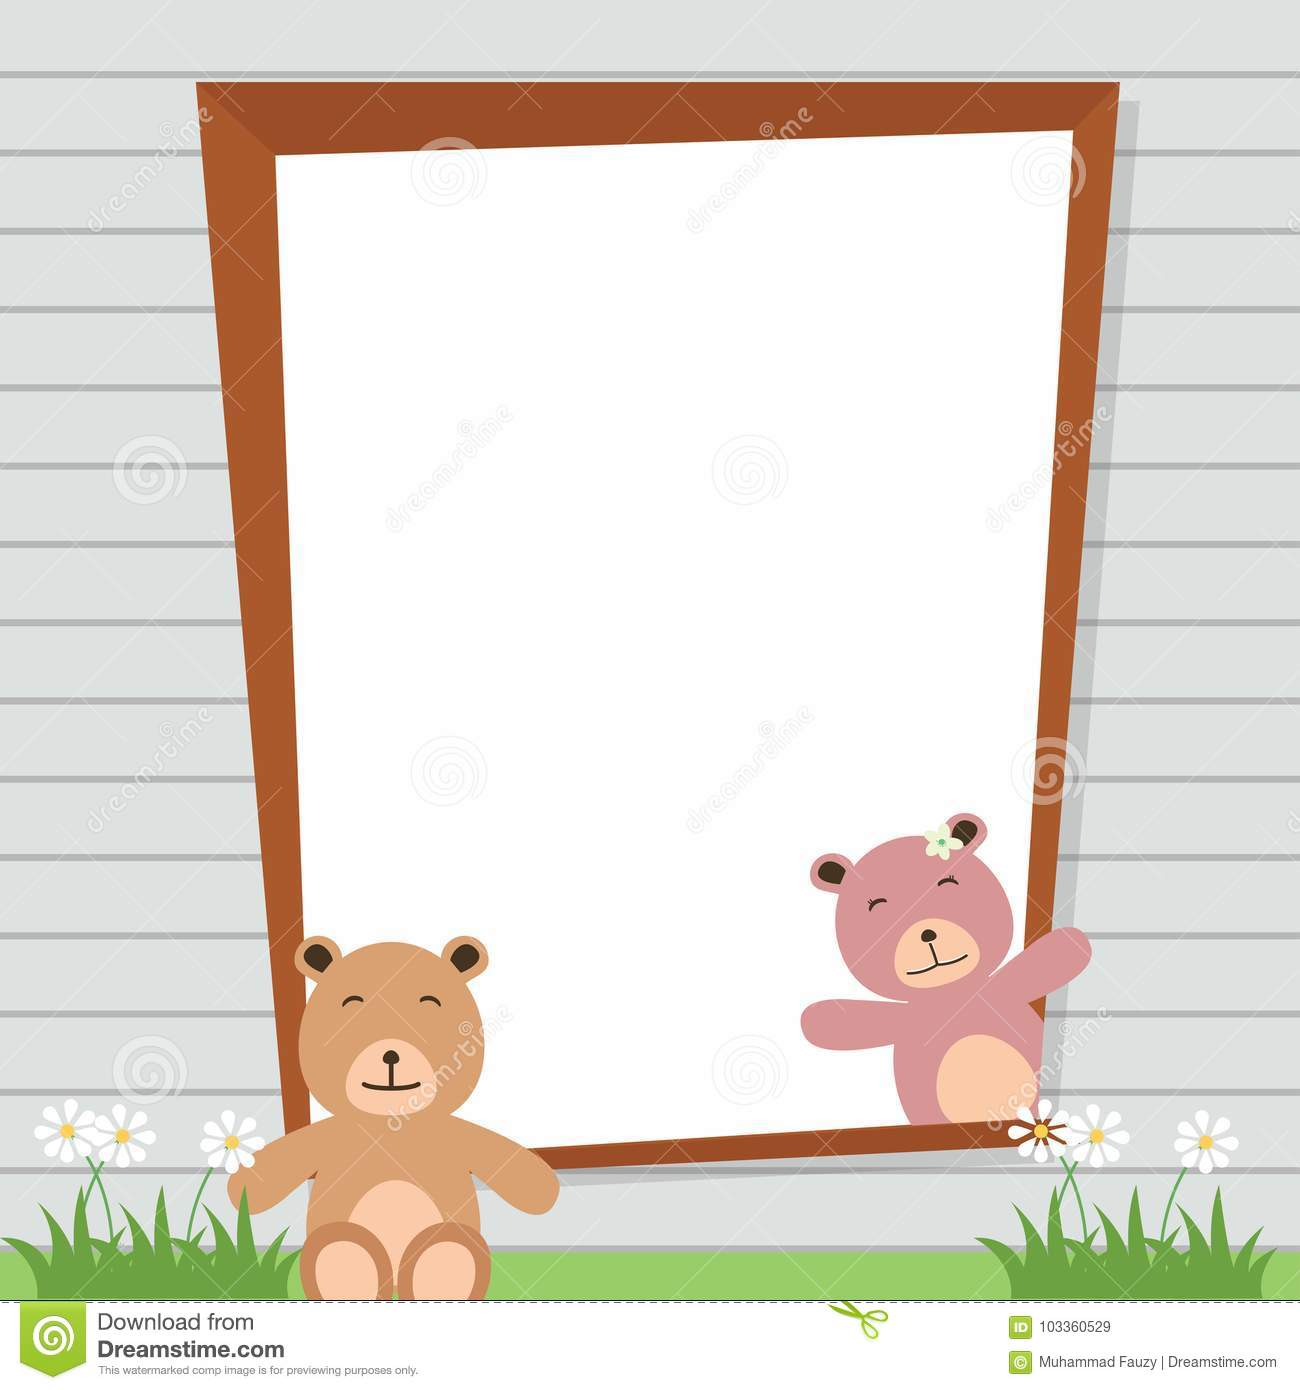 Cute Teddy Bear Frame stock vector. Illustration of doll - 103360529